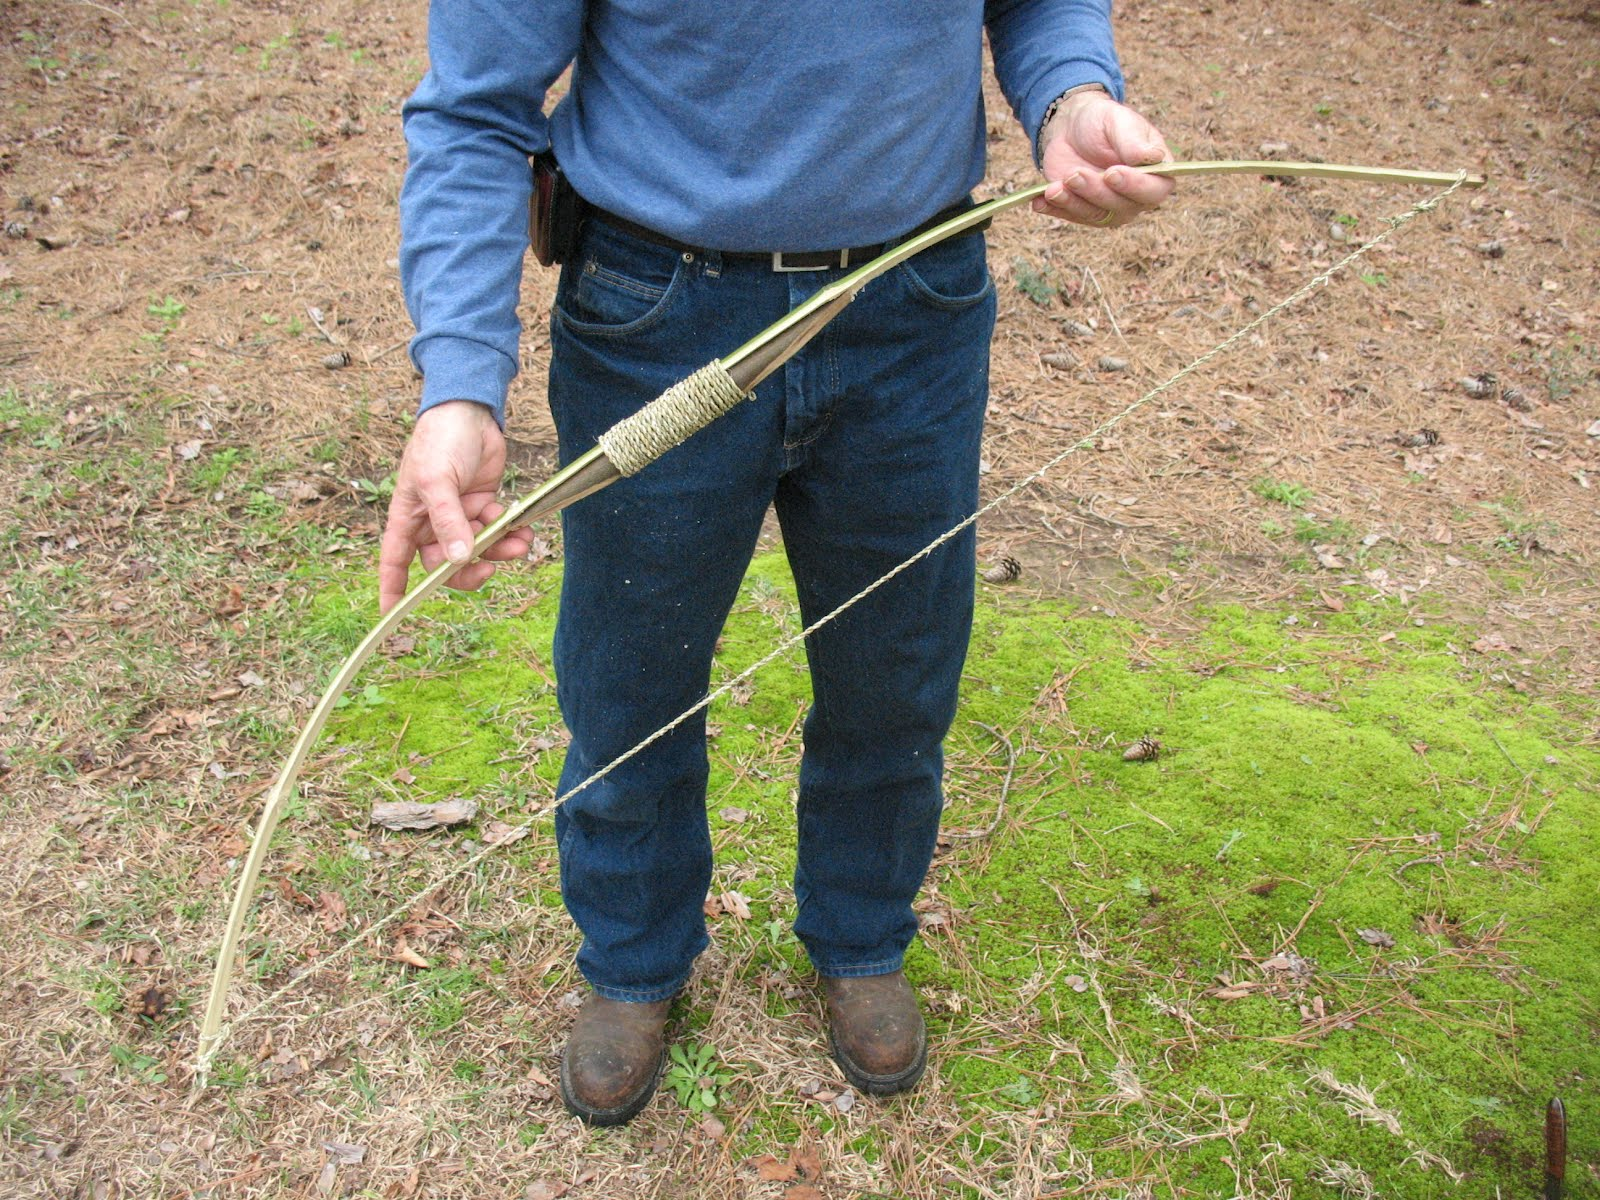 Sensible Survival: Build a Bamboo Survival Bow in 30 Minutes